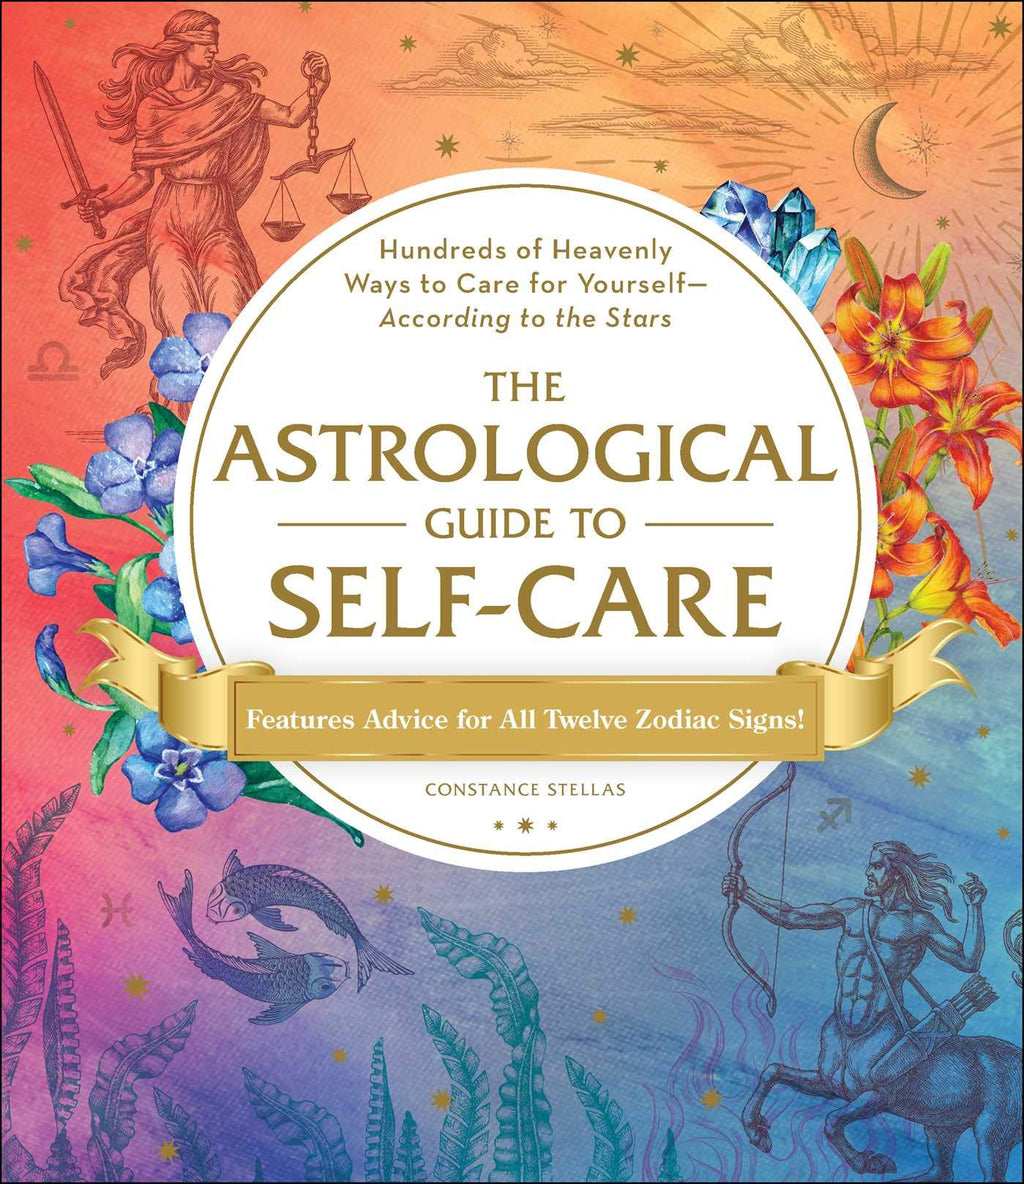 Astrological Guide to Self-Care by Constance Stellas